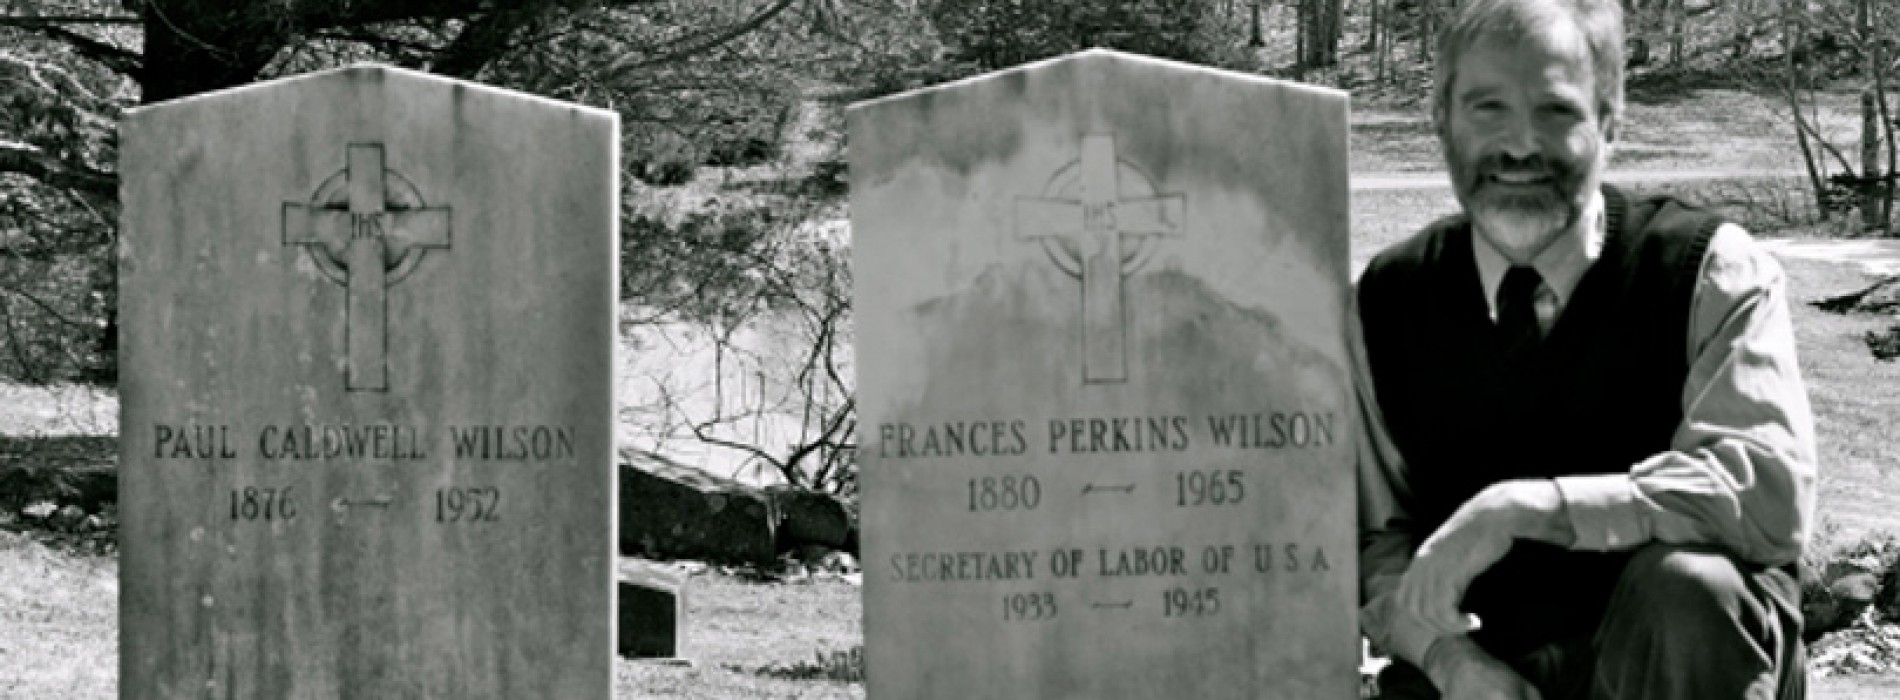 Frances Perkins would support raising Maine's minimum wage